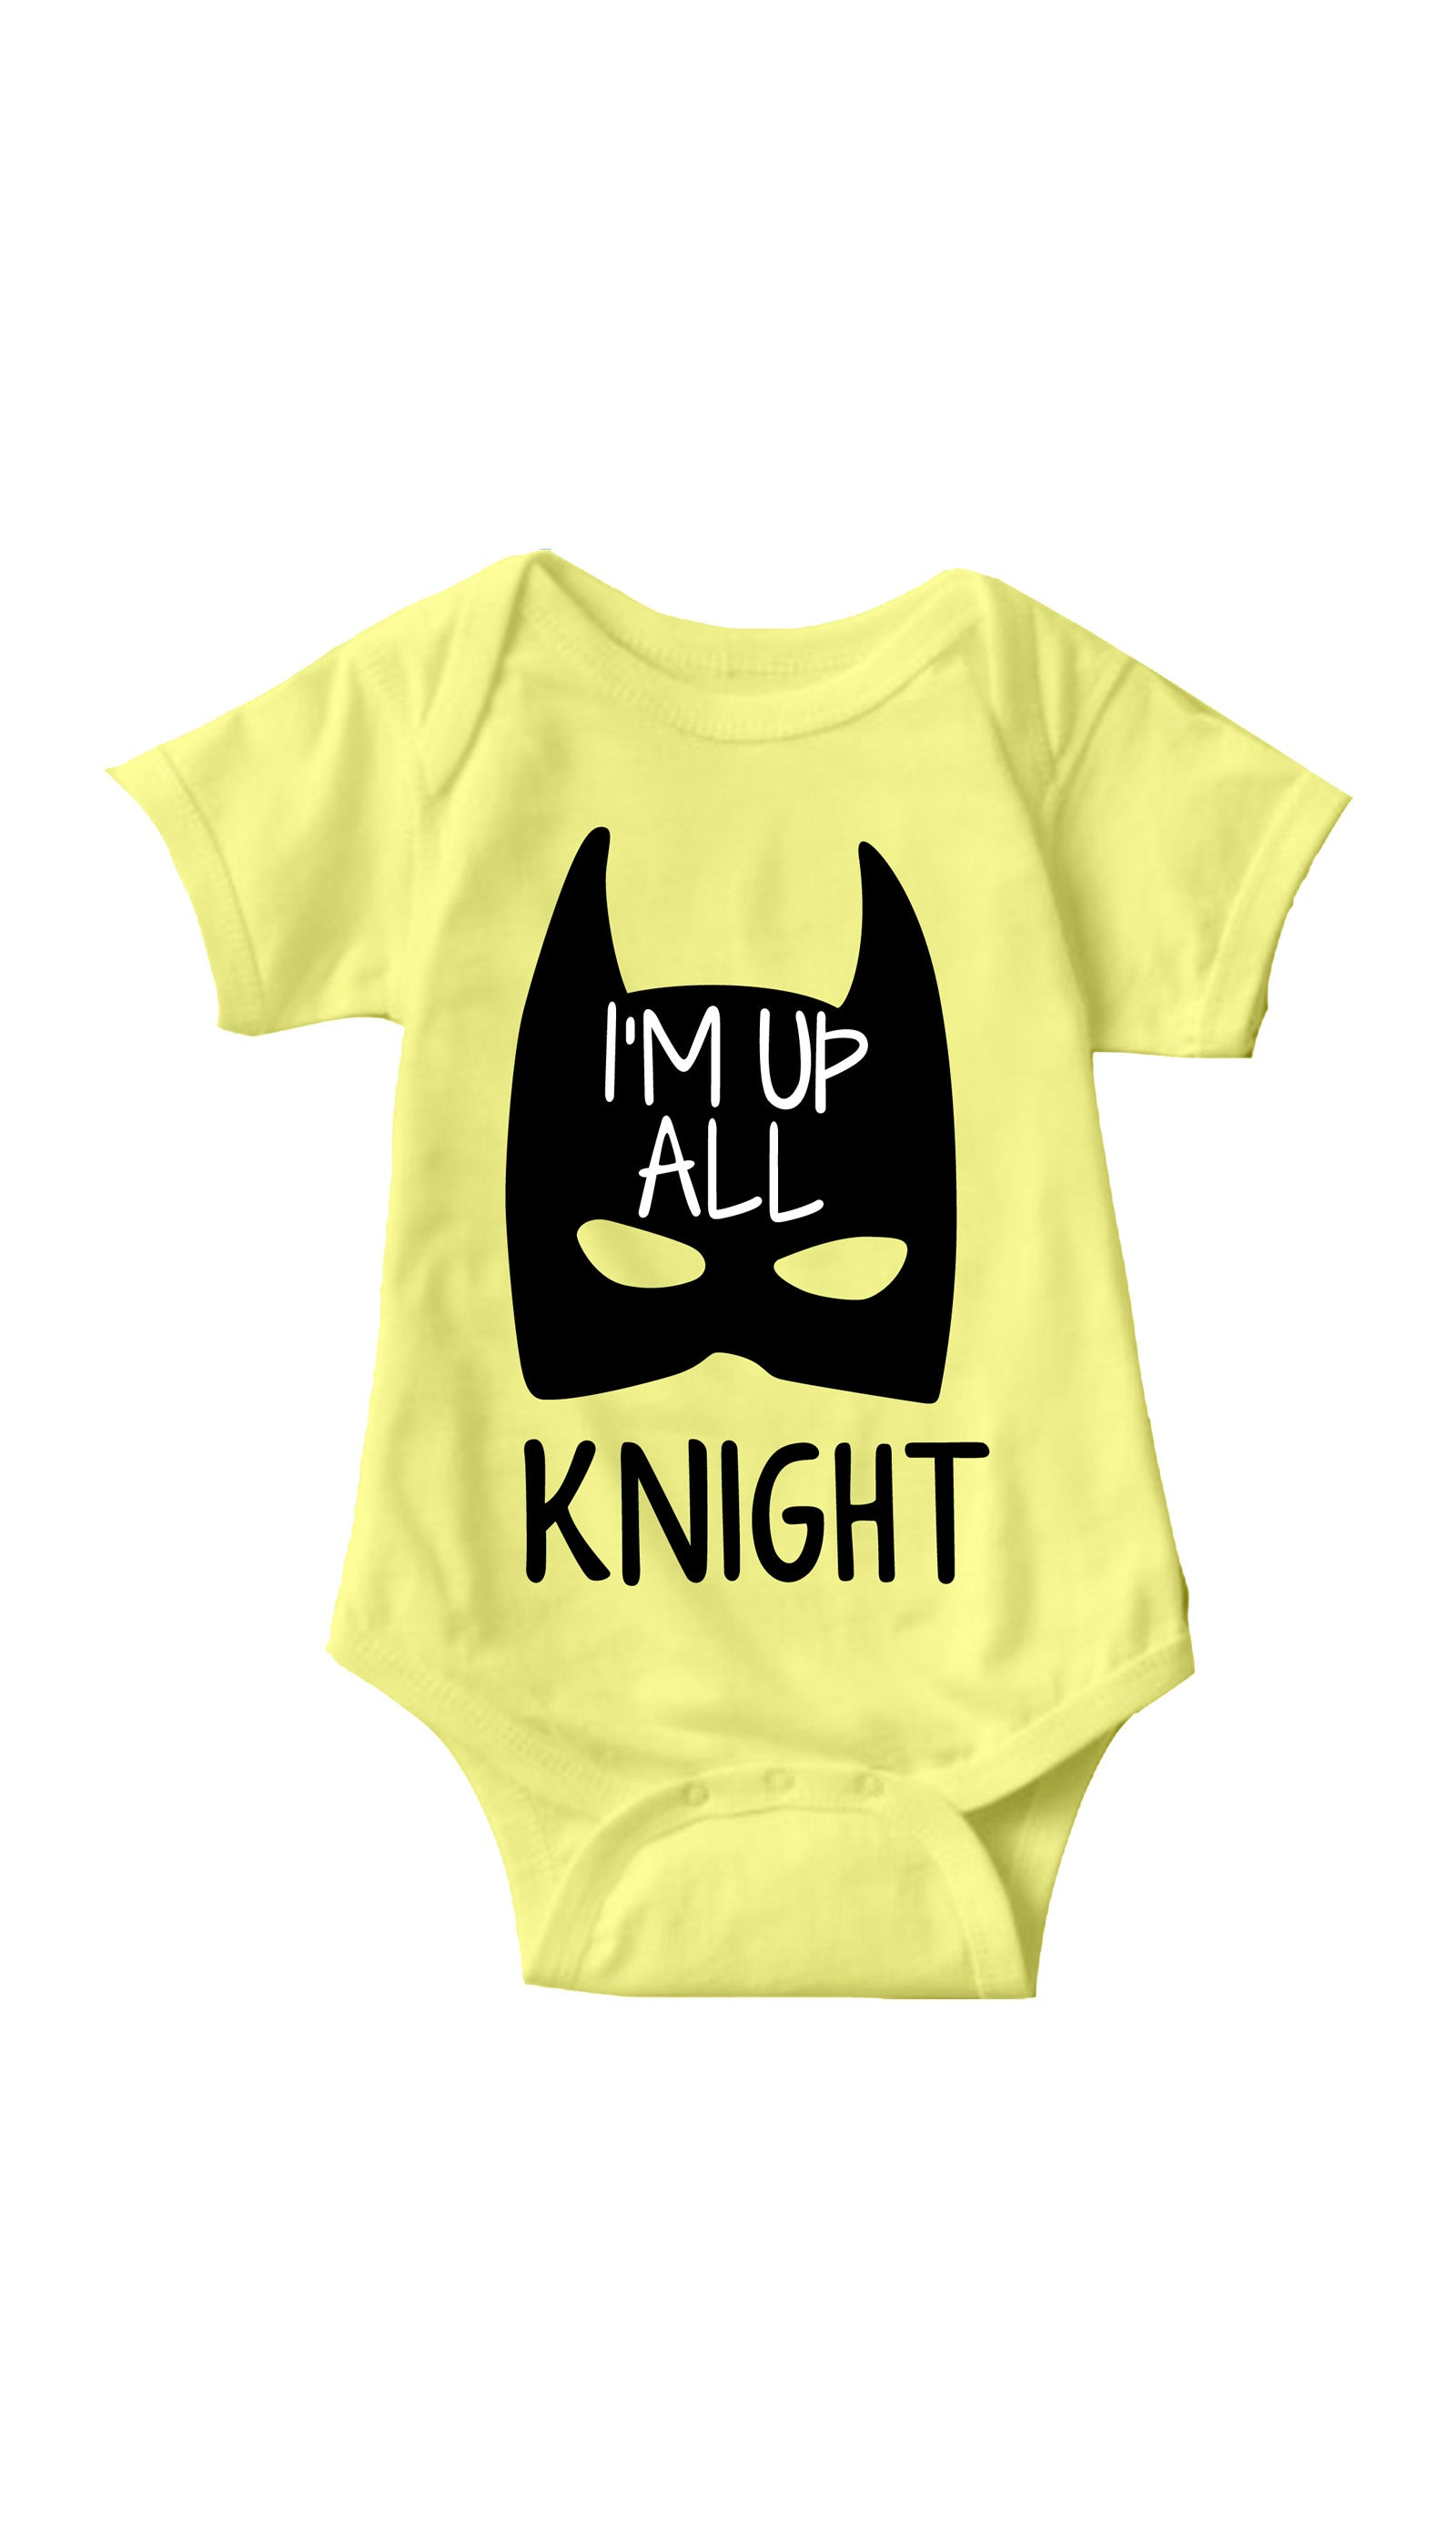 I'm Up All Knight Yellow Infant Onesie | Sarcastic ME